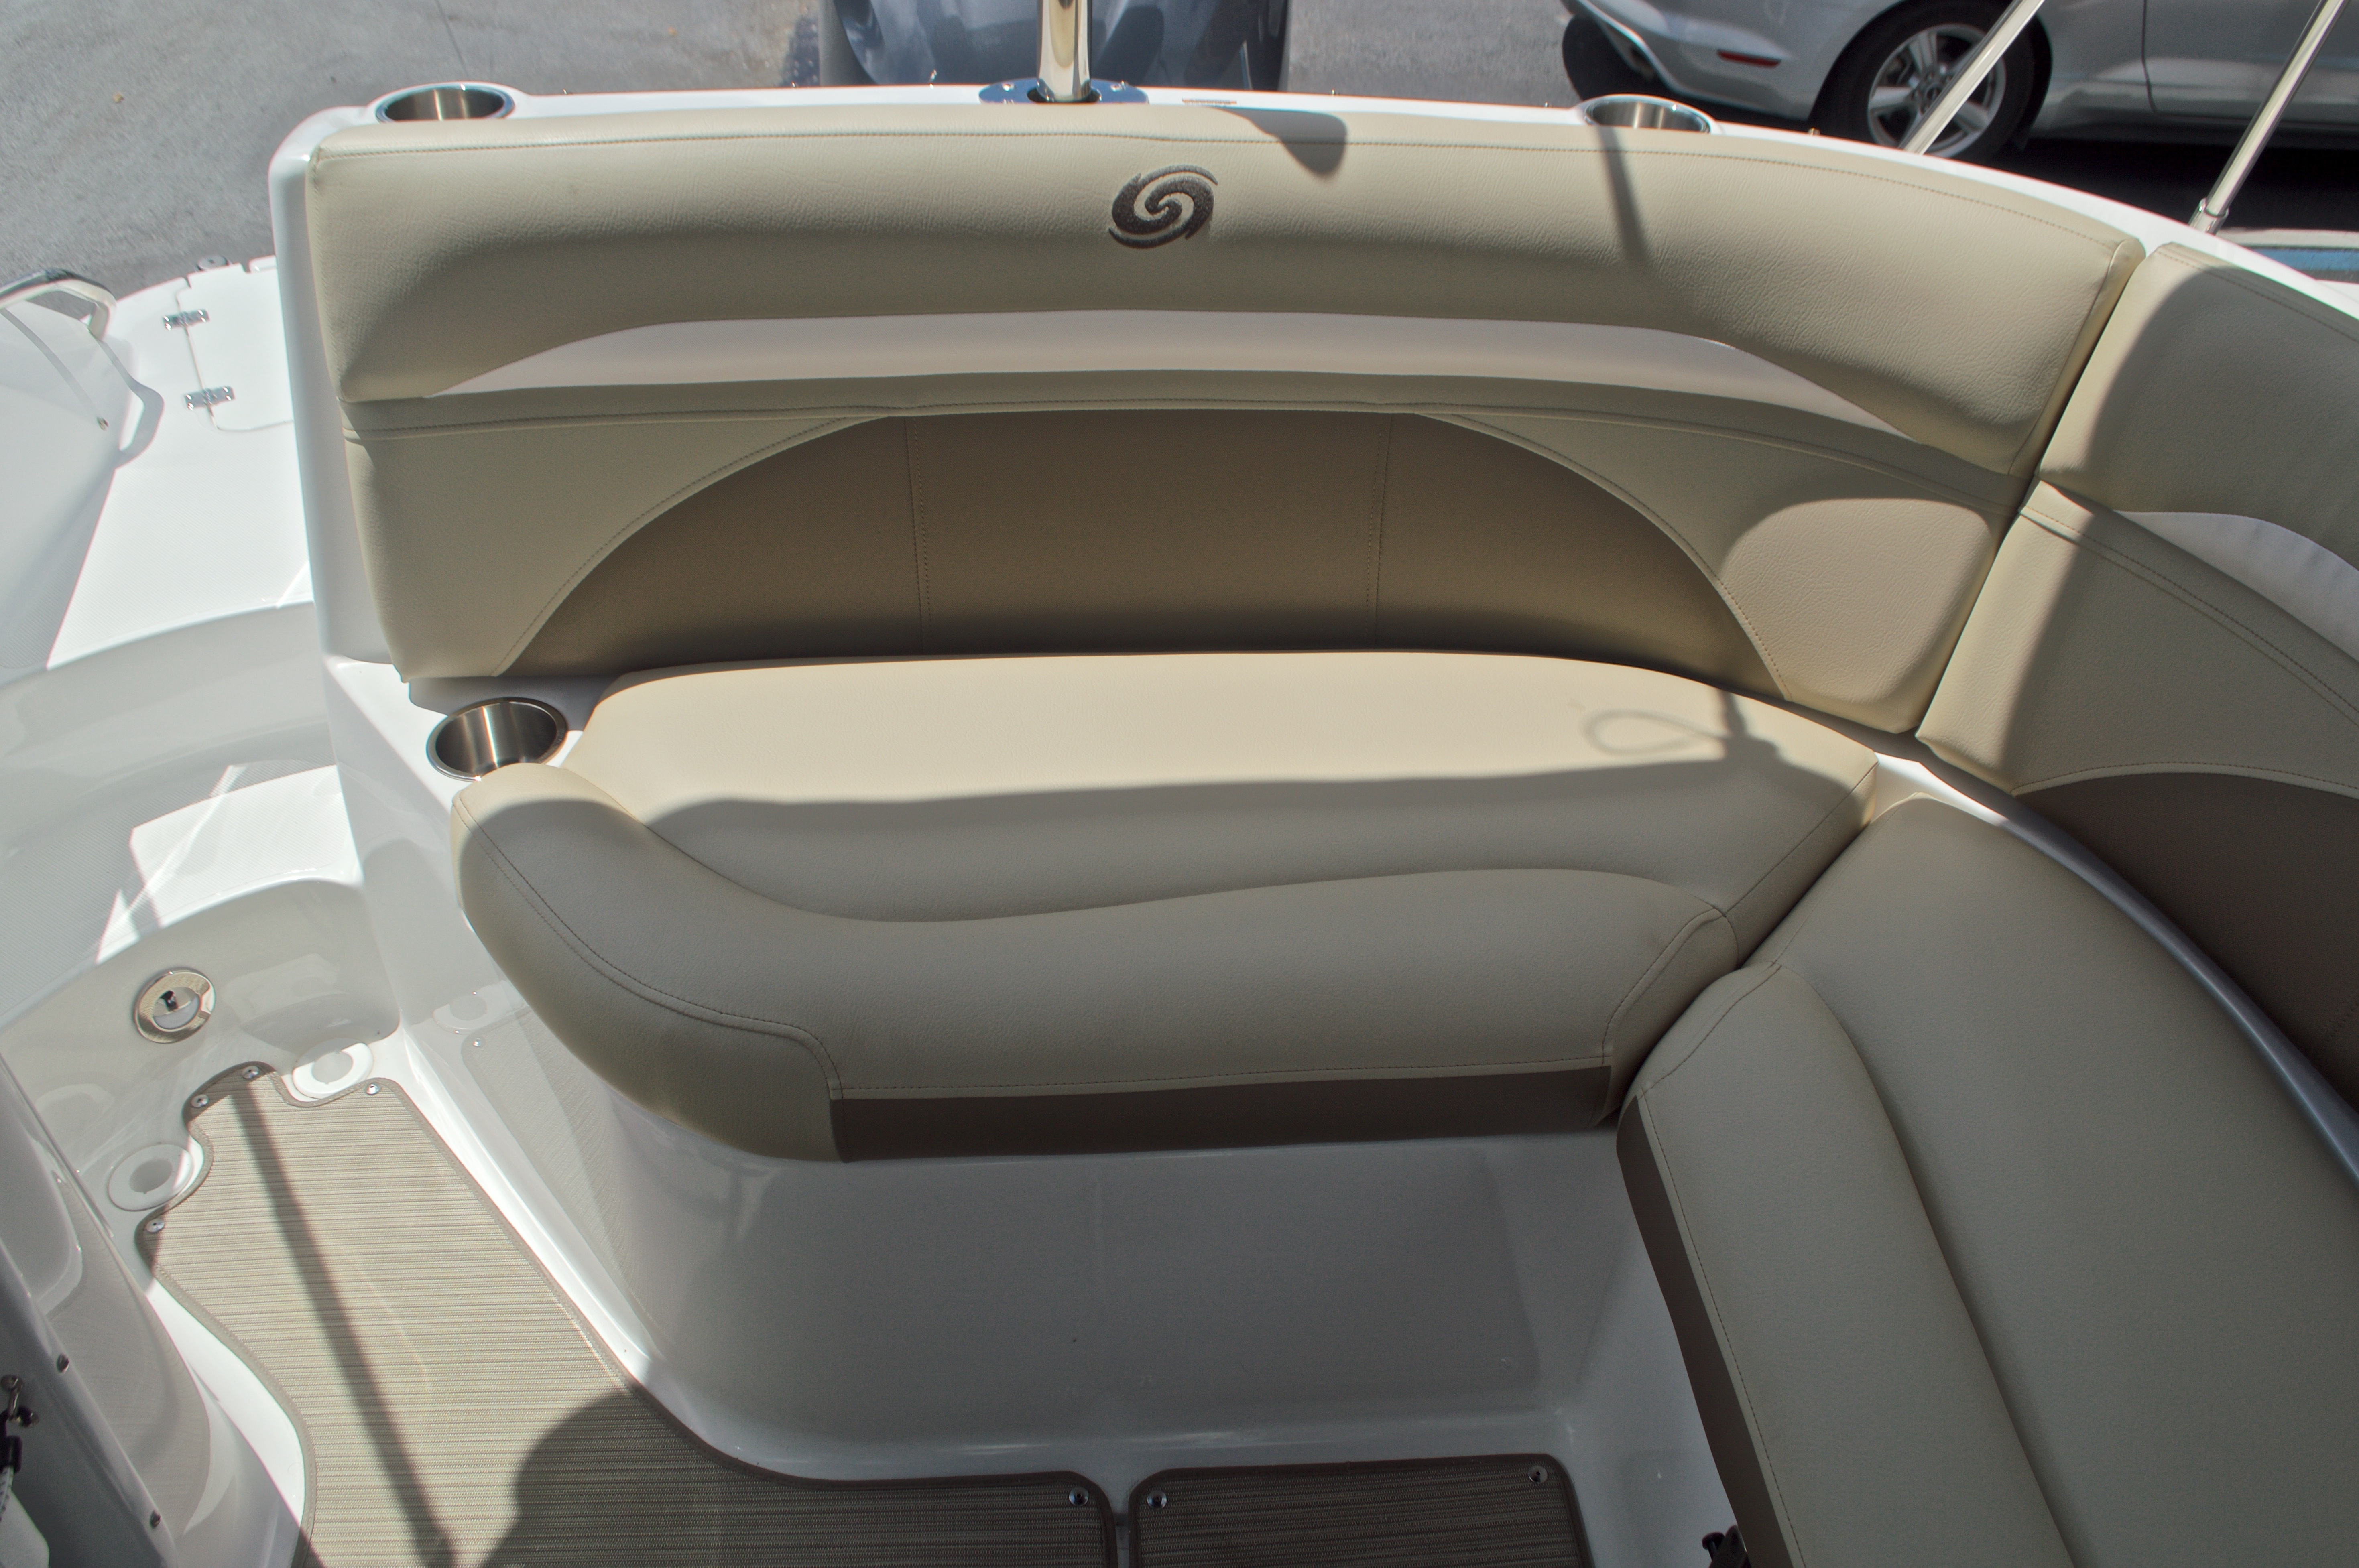 Thumbnail 19 for New 2017 Hurricane SunDeck SD 2400 OB boat for sale in West Palm Beach, FL